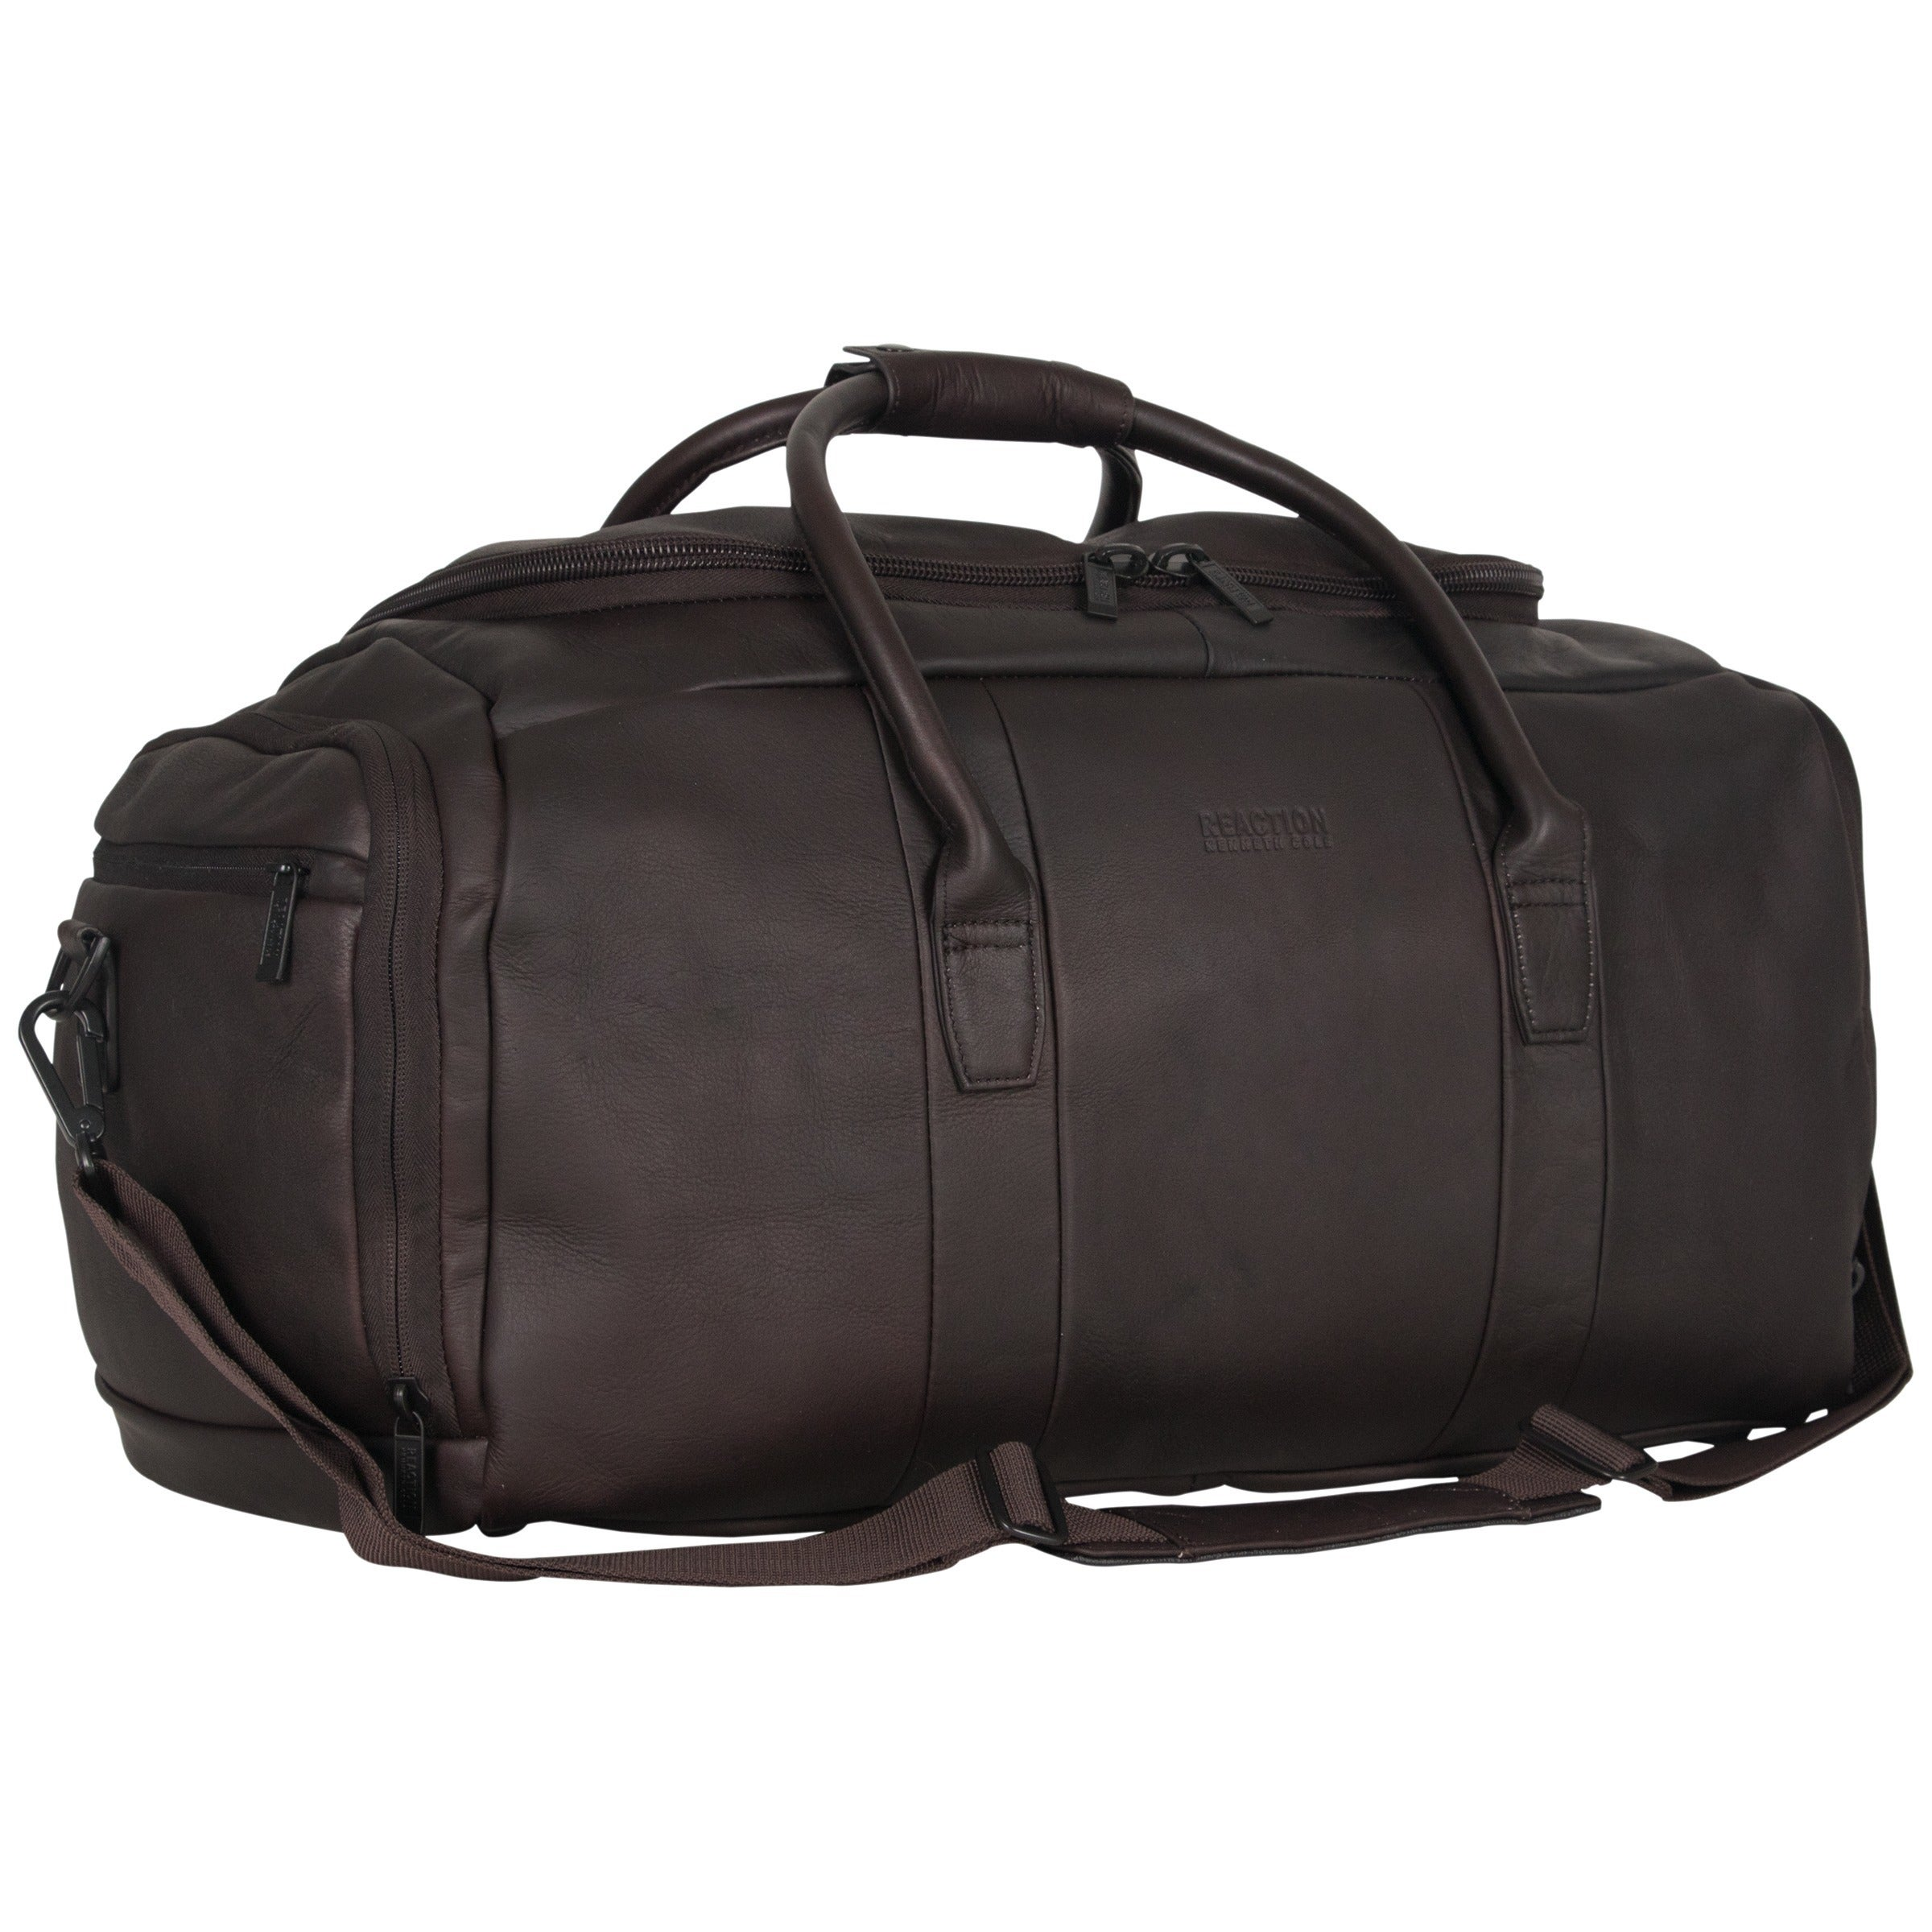 2b9c0caef48 Kenneth Cole Reaction Colombian Leather 20-inch Top Load Multi-Compartment  Duffel Bag / Carry On